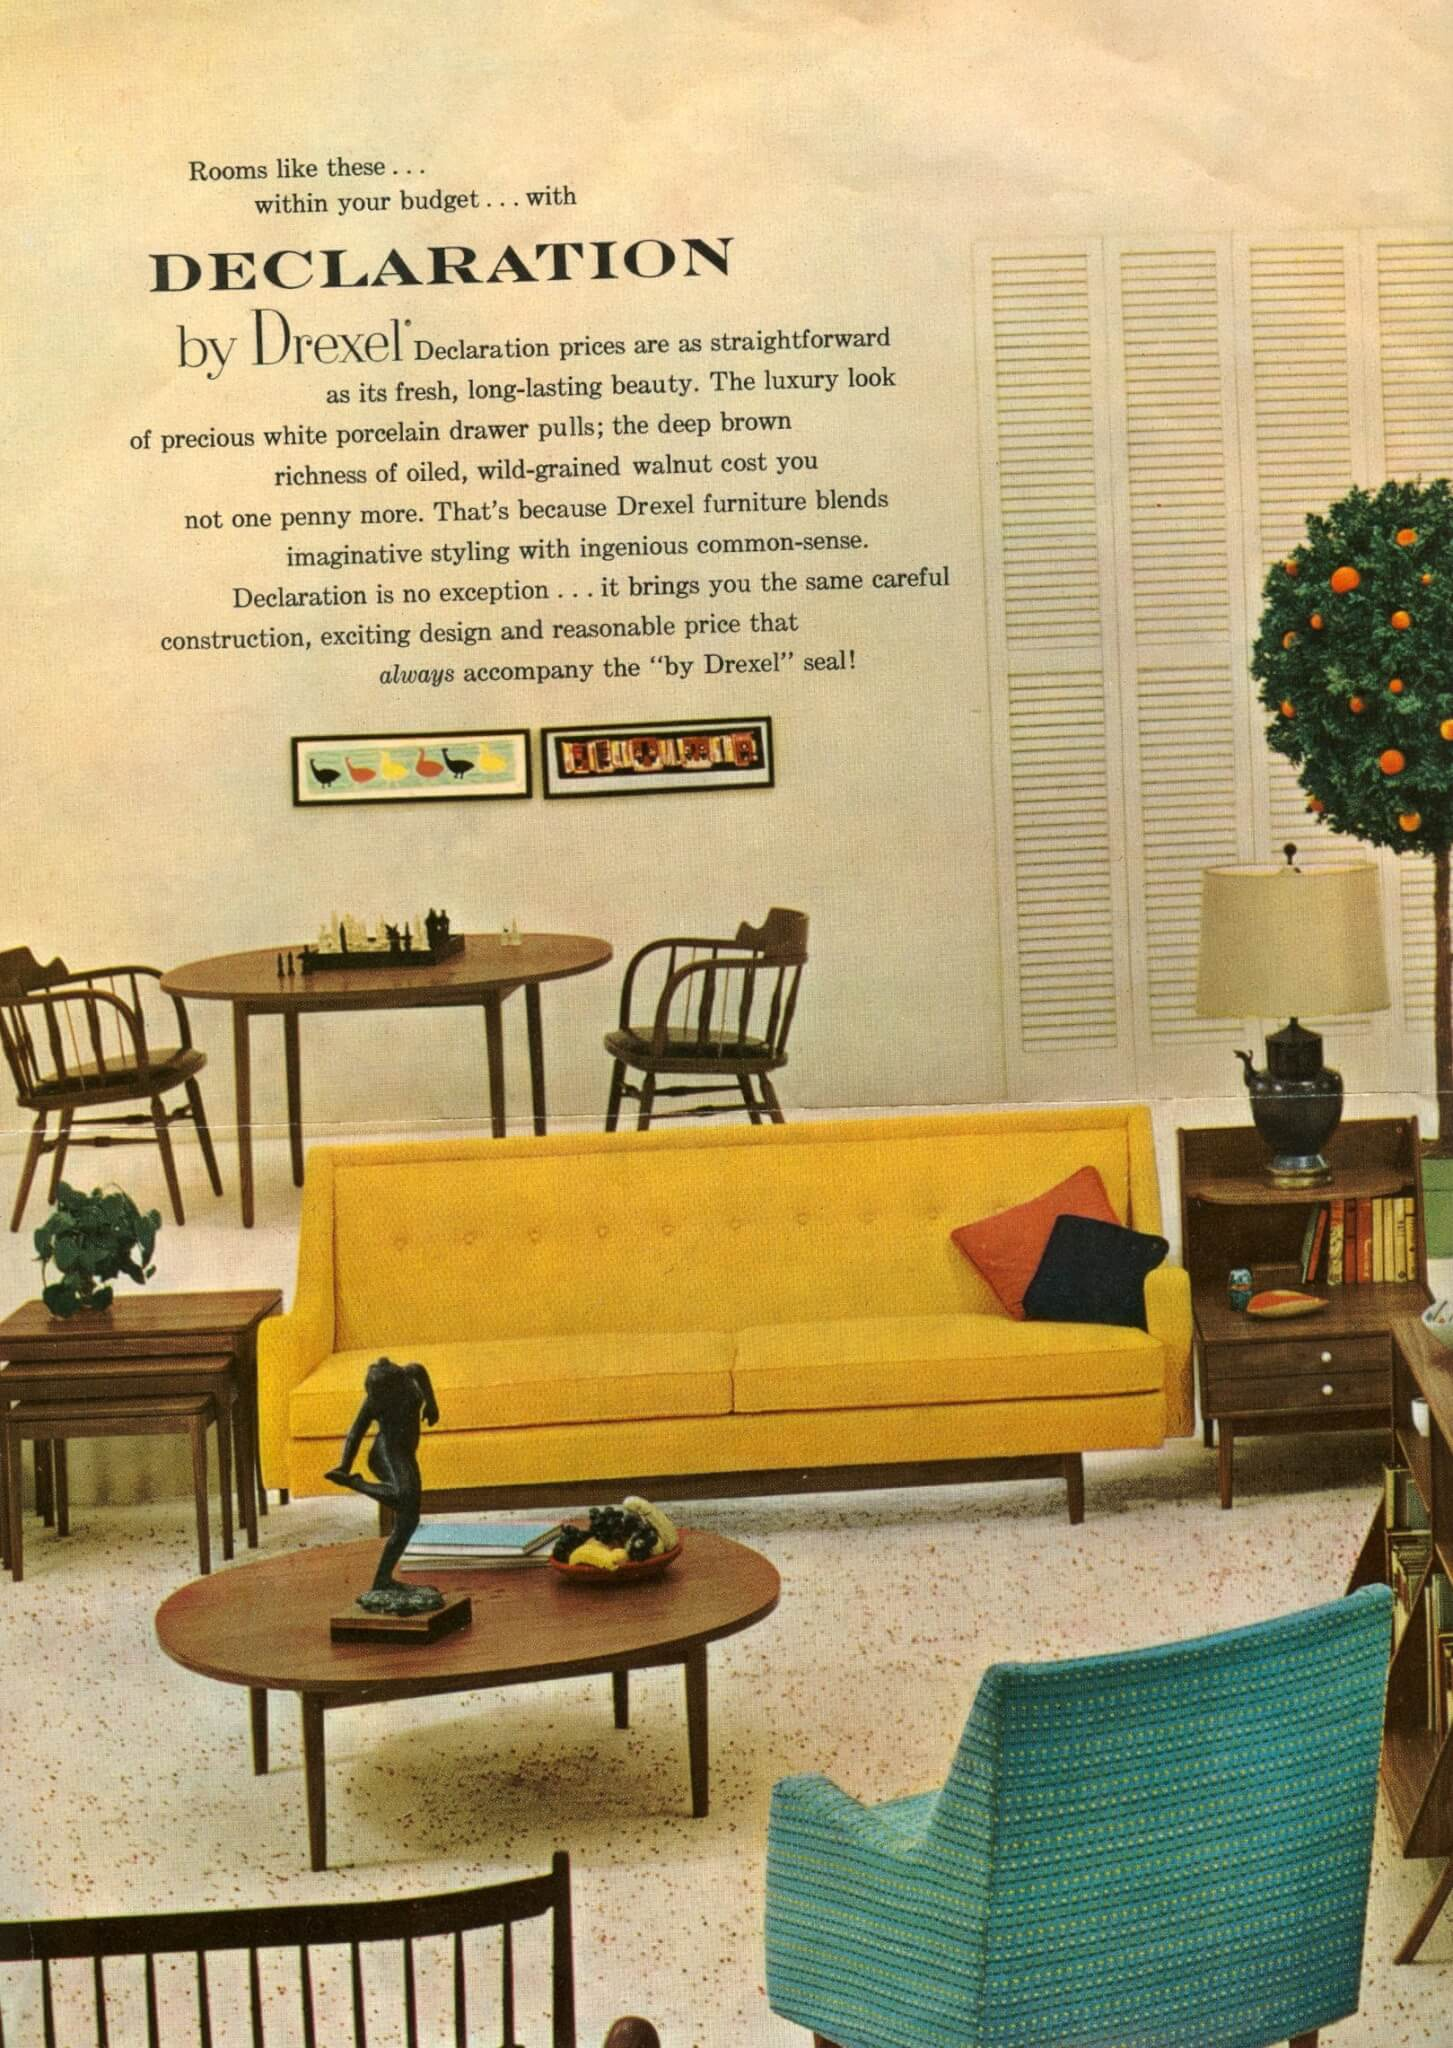 Vintage Drexel Declaration Furniture Catherine Sends Us